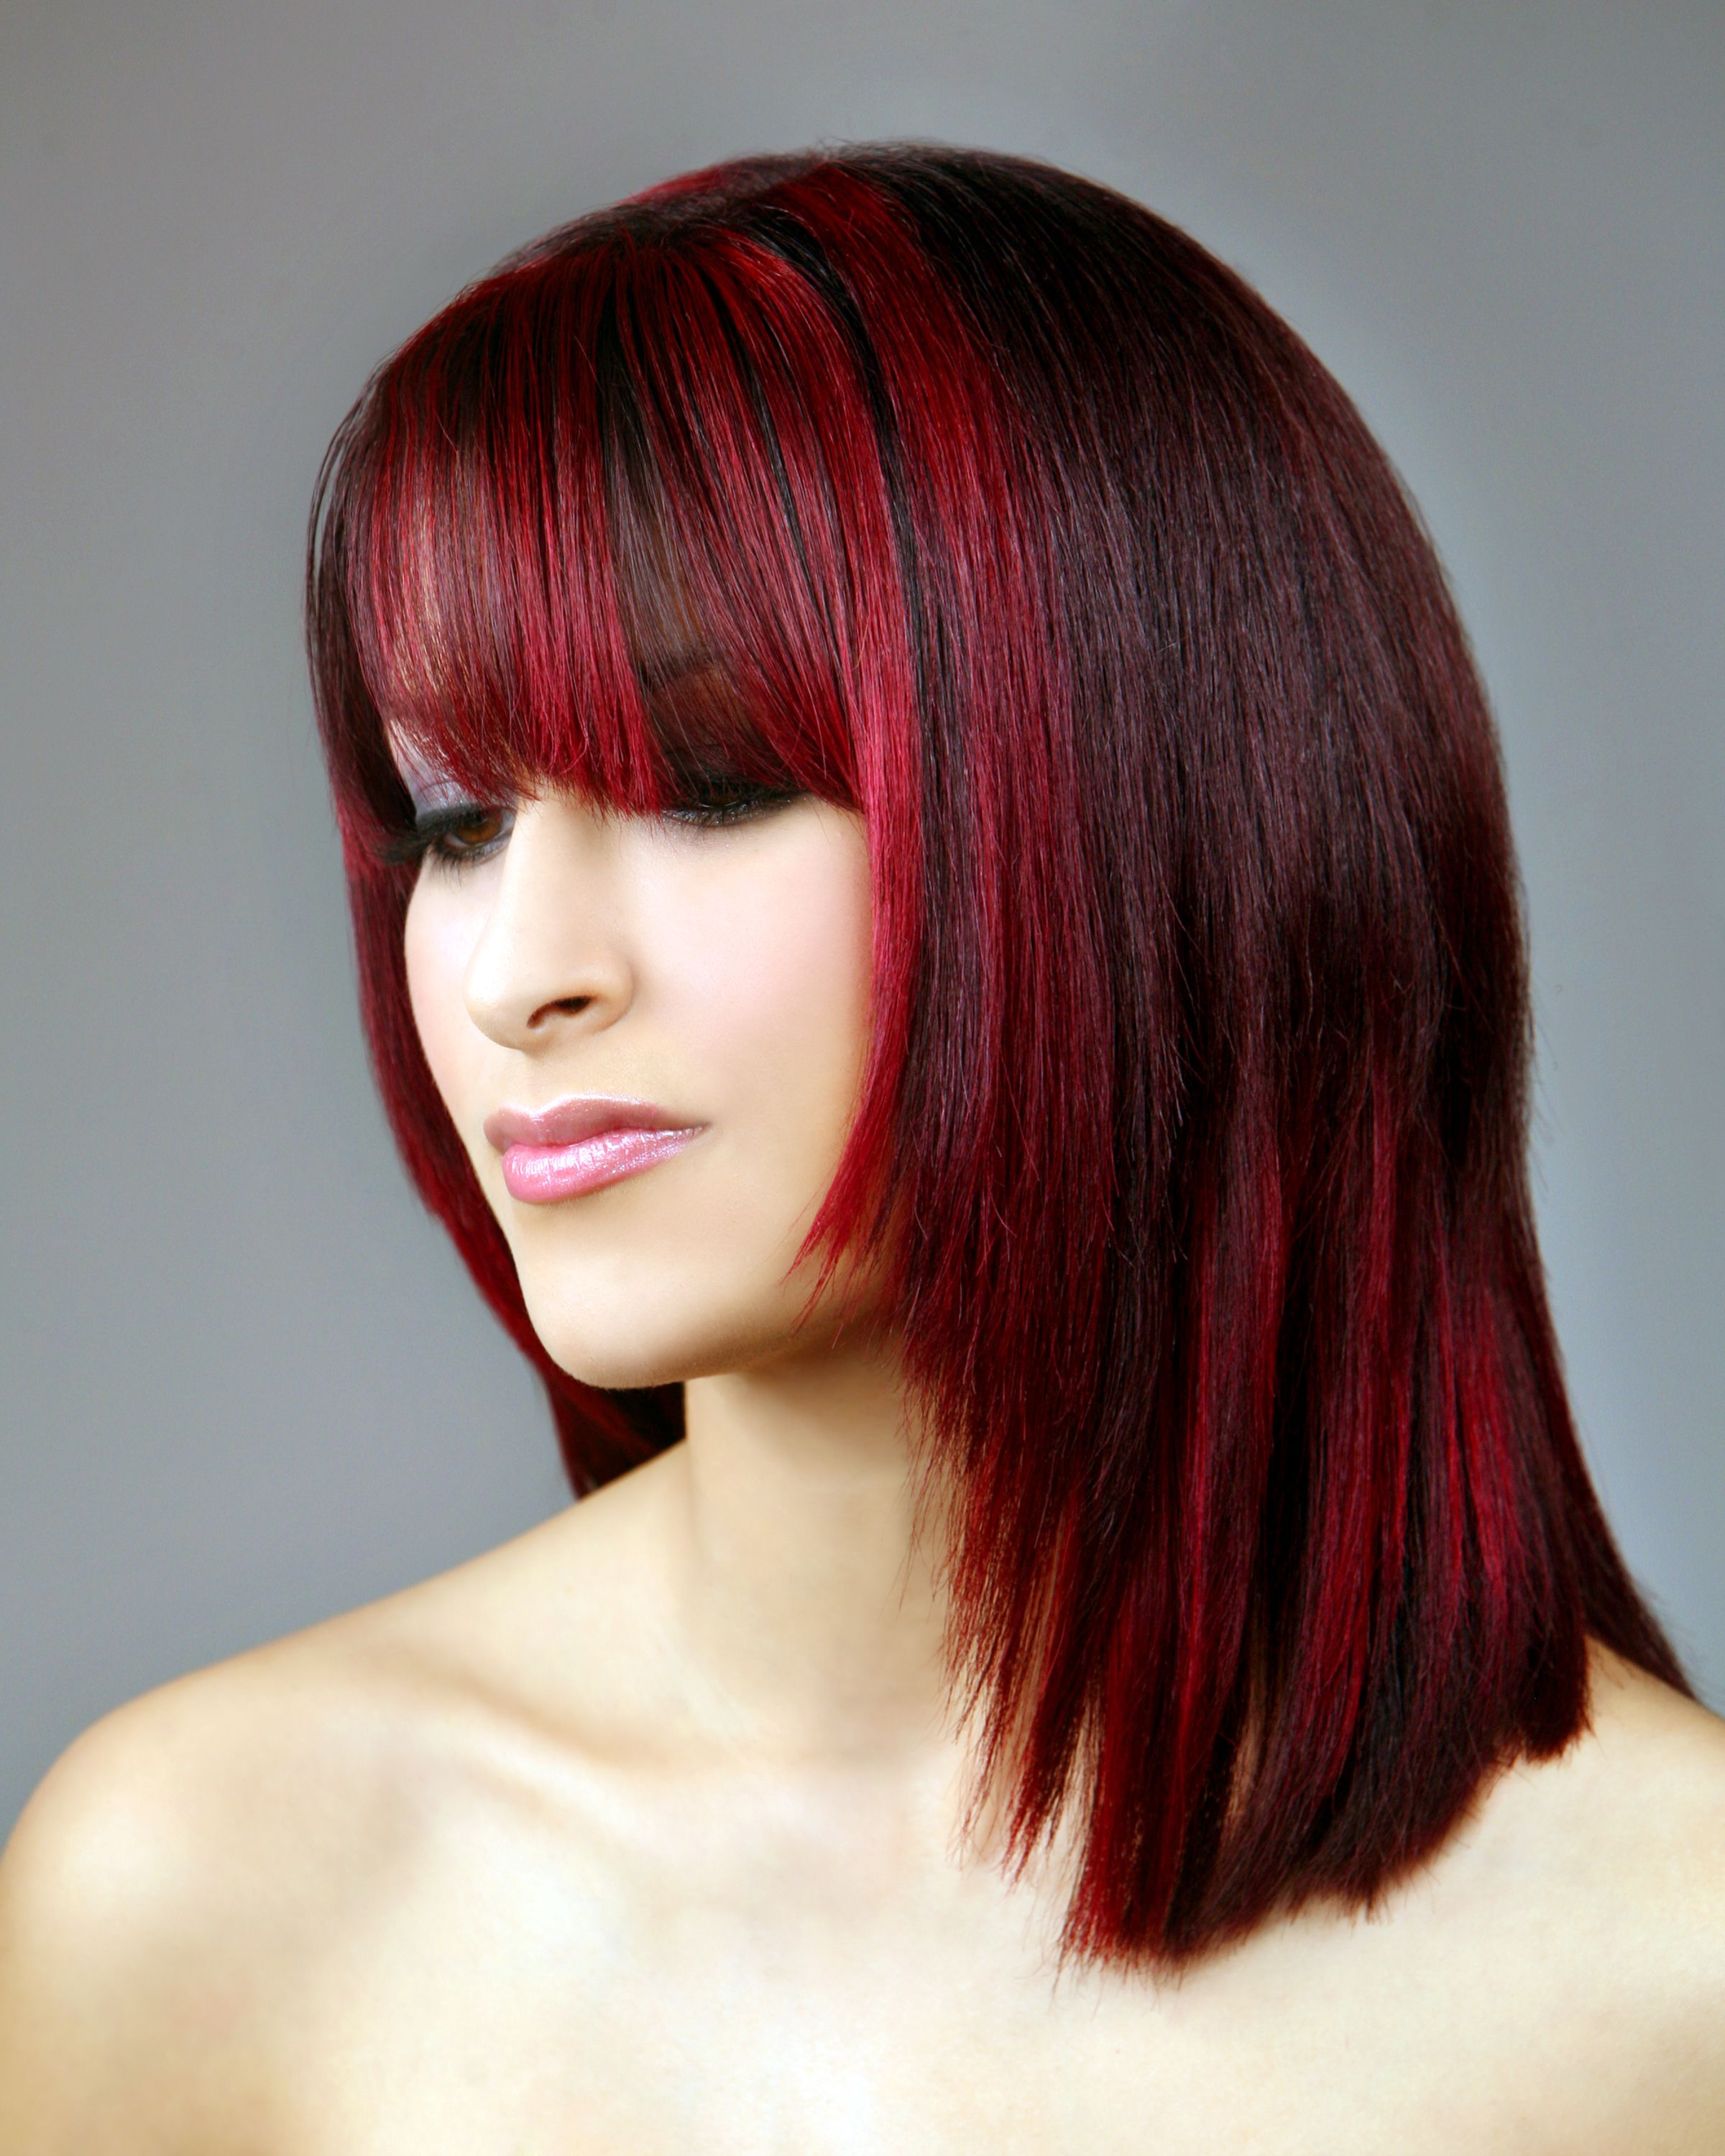 Burgundy highlights for dark hair hairallstyles trendy all hair image detail for hairhaircolorshair colourshair colors for fall fall hair wish i could get away with this color nvjuhfo Images